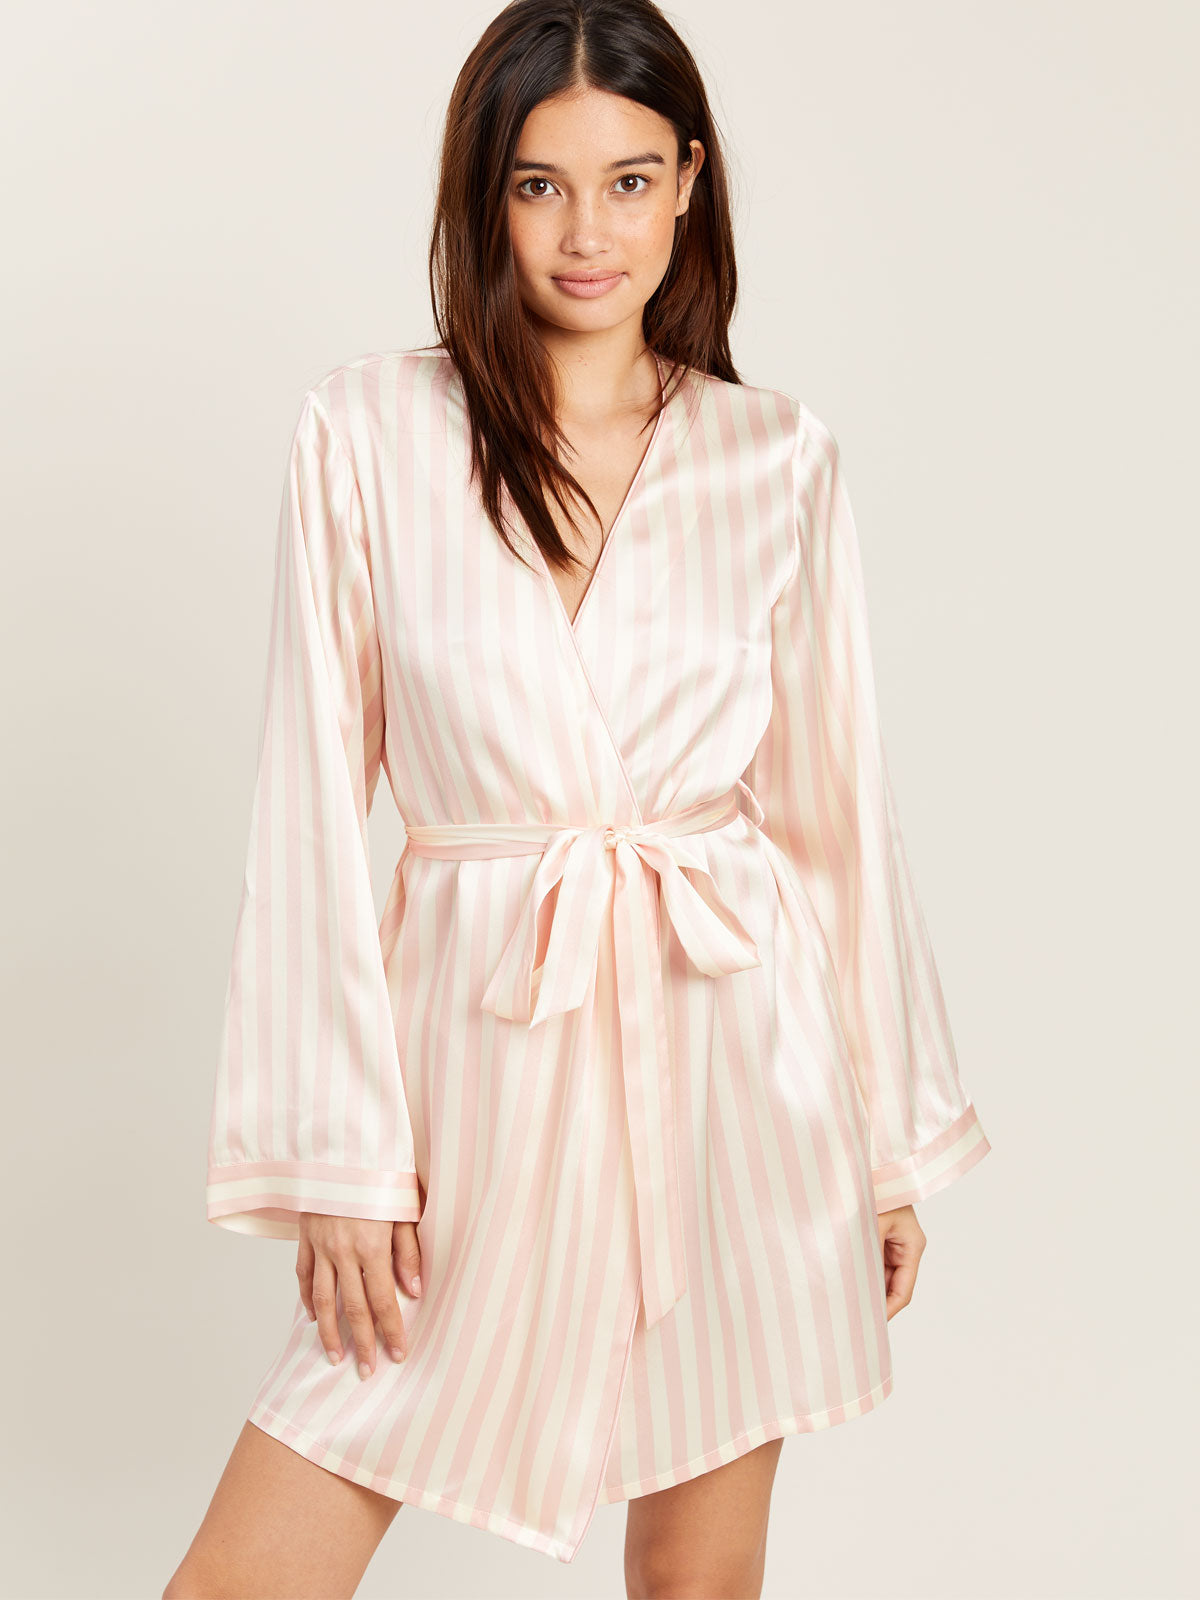 Langley Robe in Petal Stripe By Morgan Lane